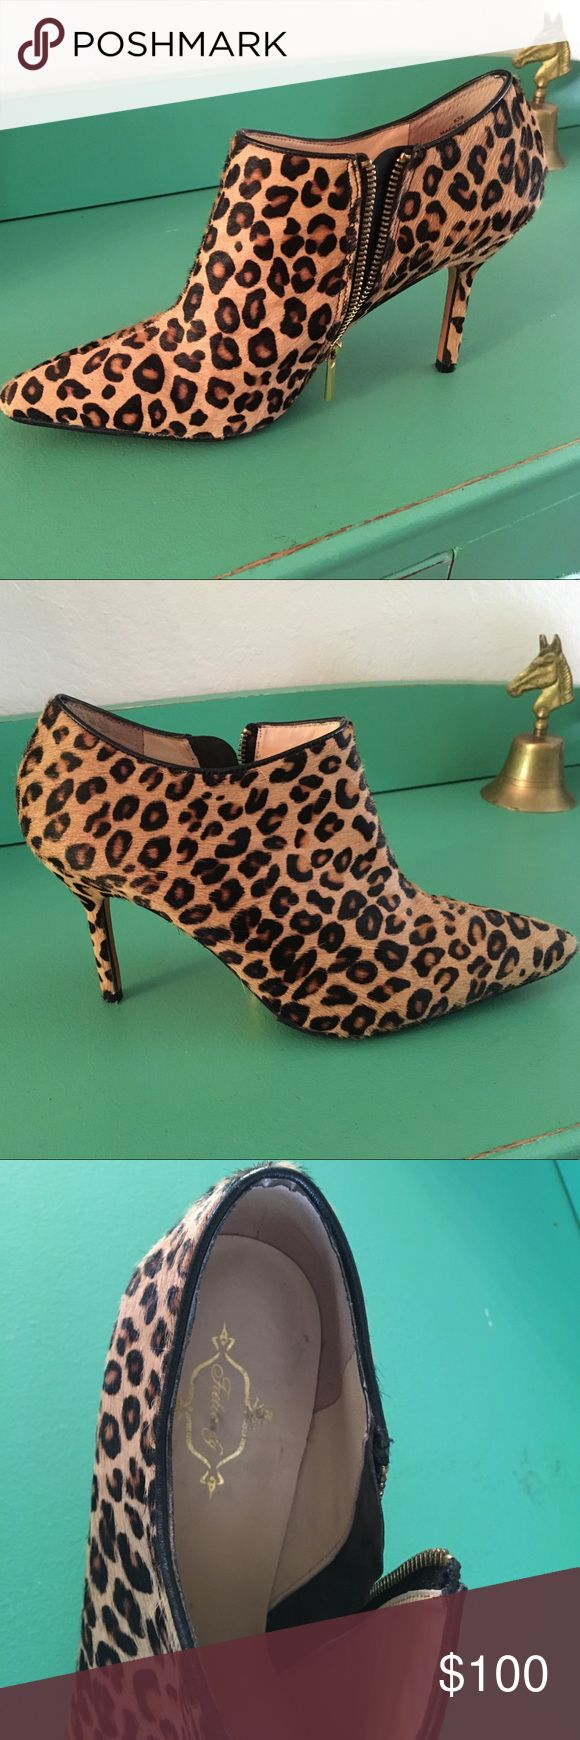 Footcandy cheetah heels Barely worn, beautiful shoes. Run a little small and narrow. Footcandy Shoes Heels